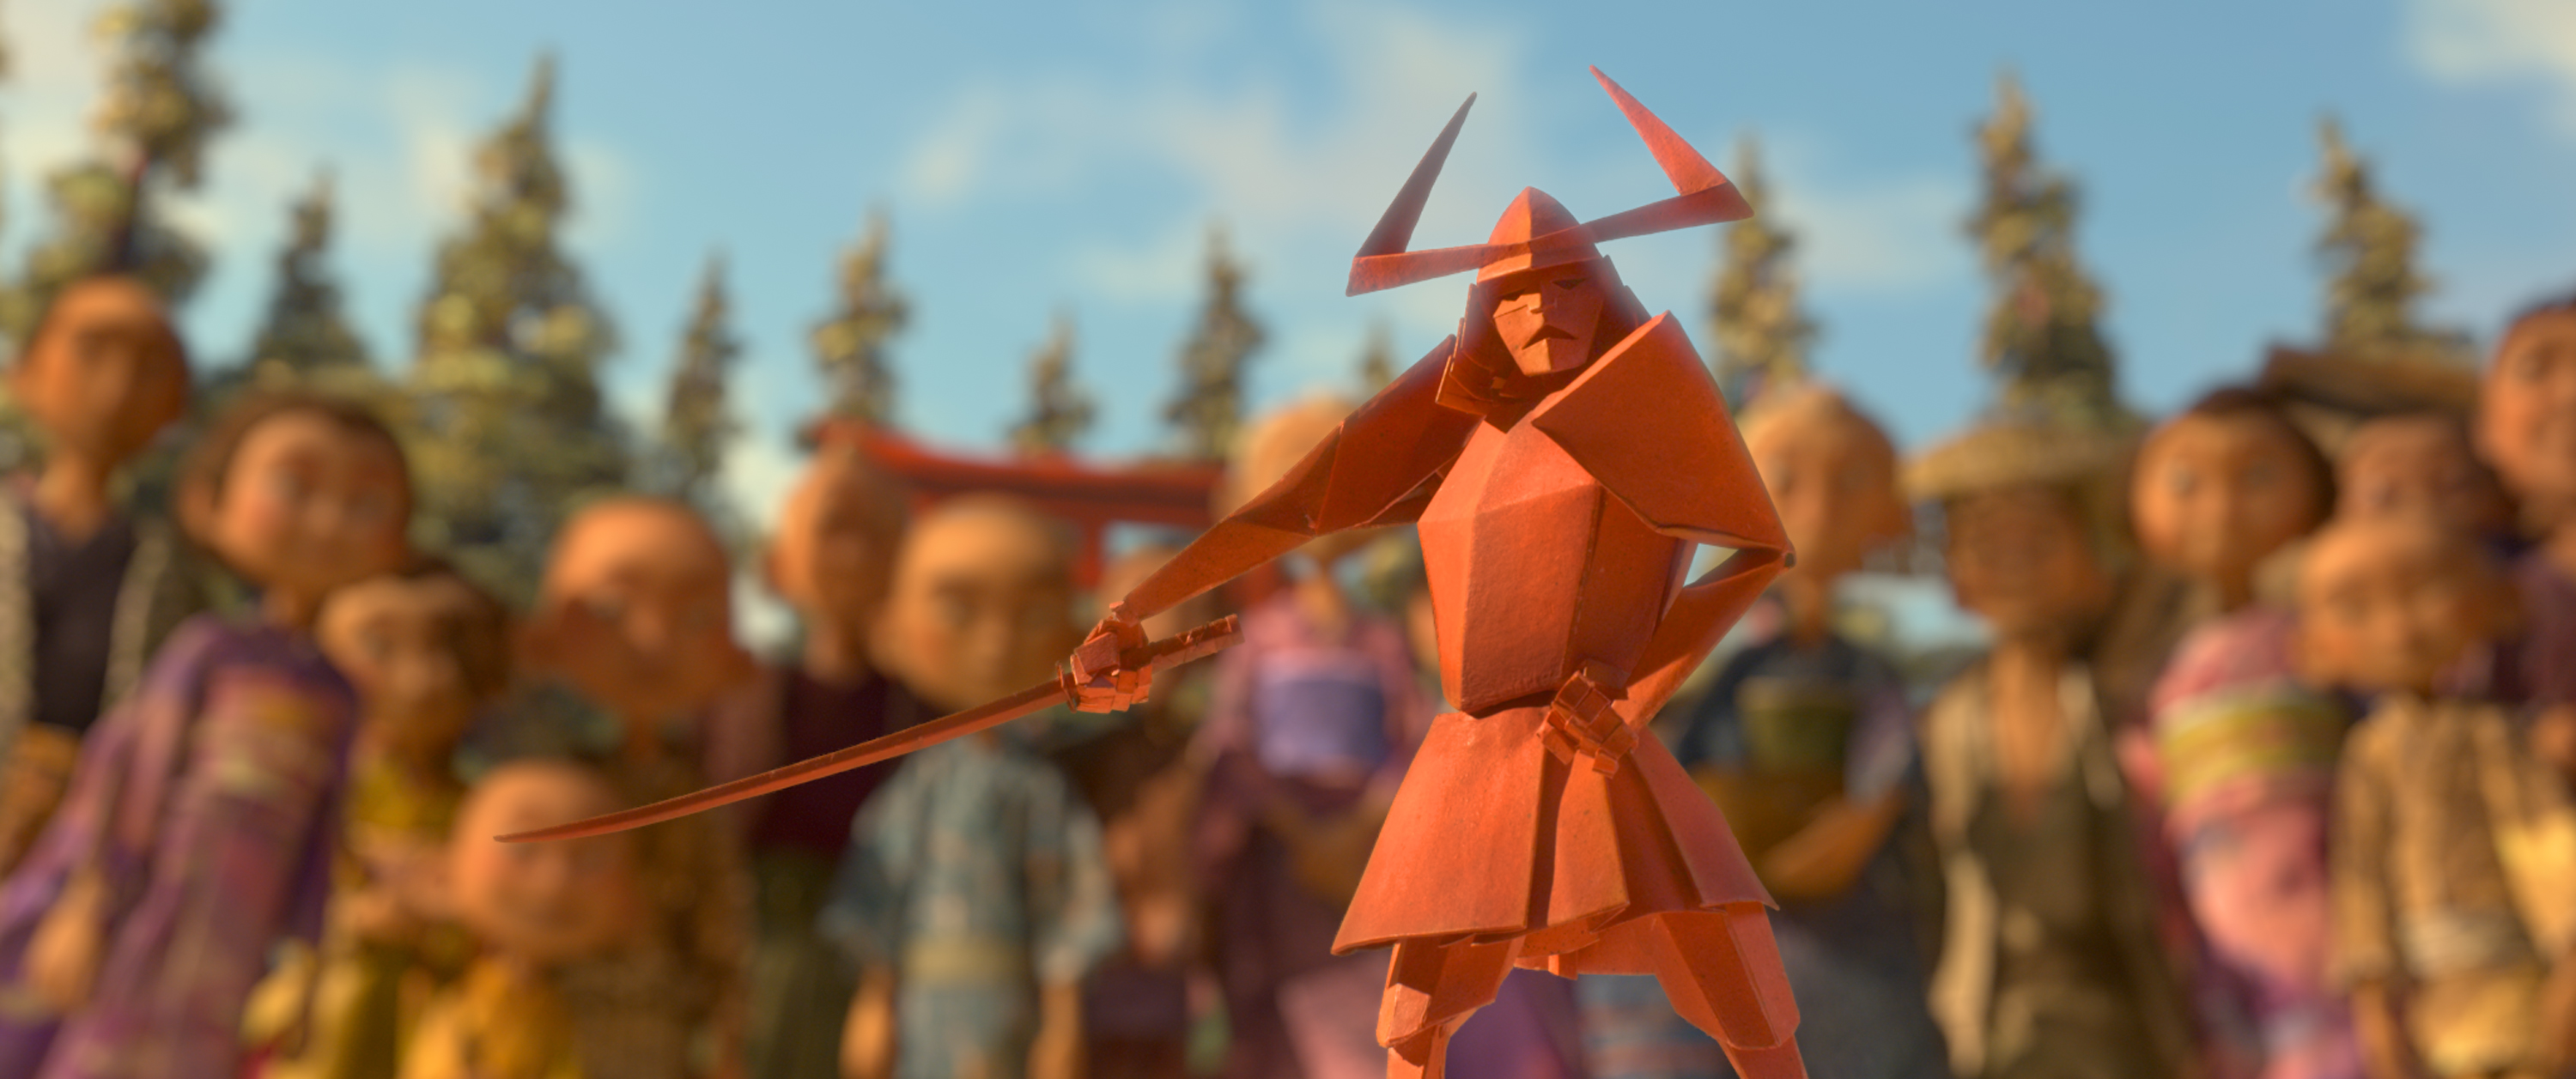 Kubo and the Two Strings.jpeg